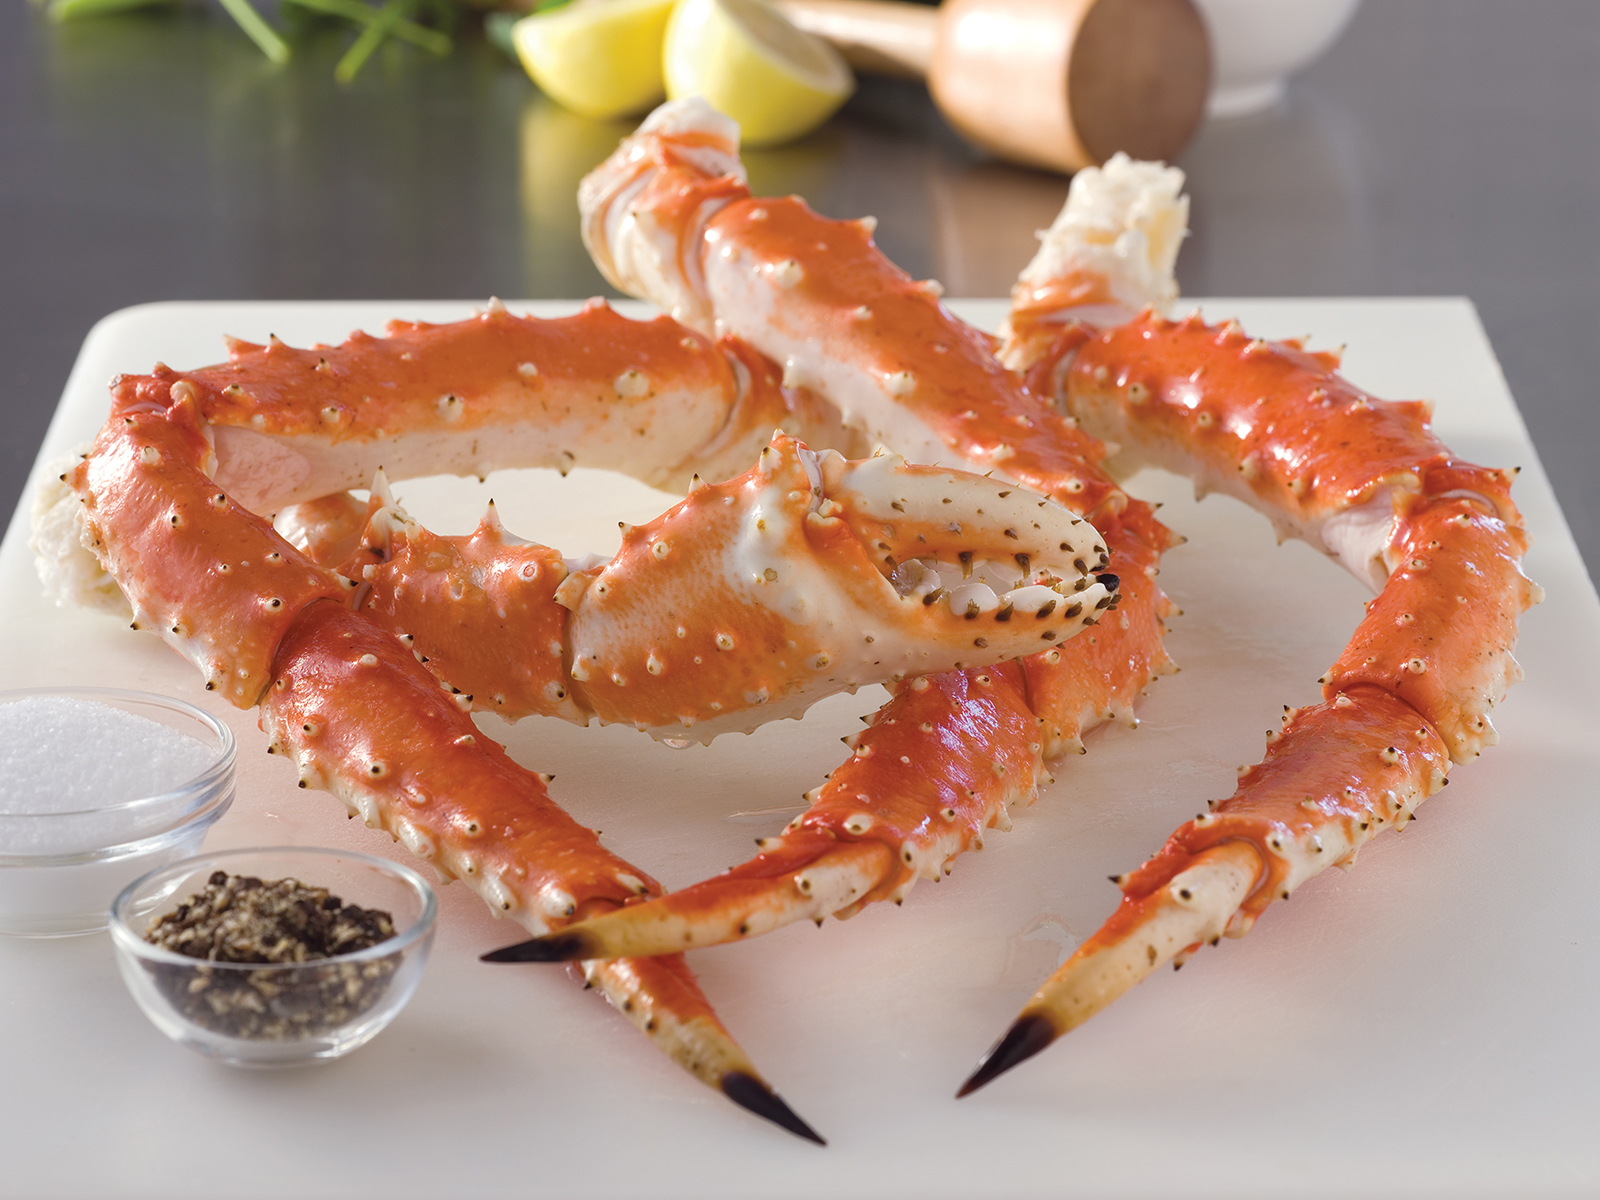 Red King Crab Legs & Claws 14-17 Count (1/20 lb) 432318